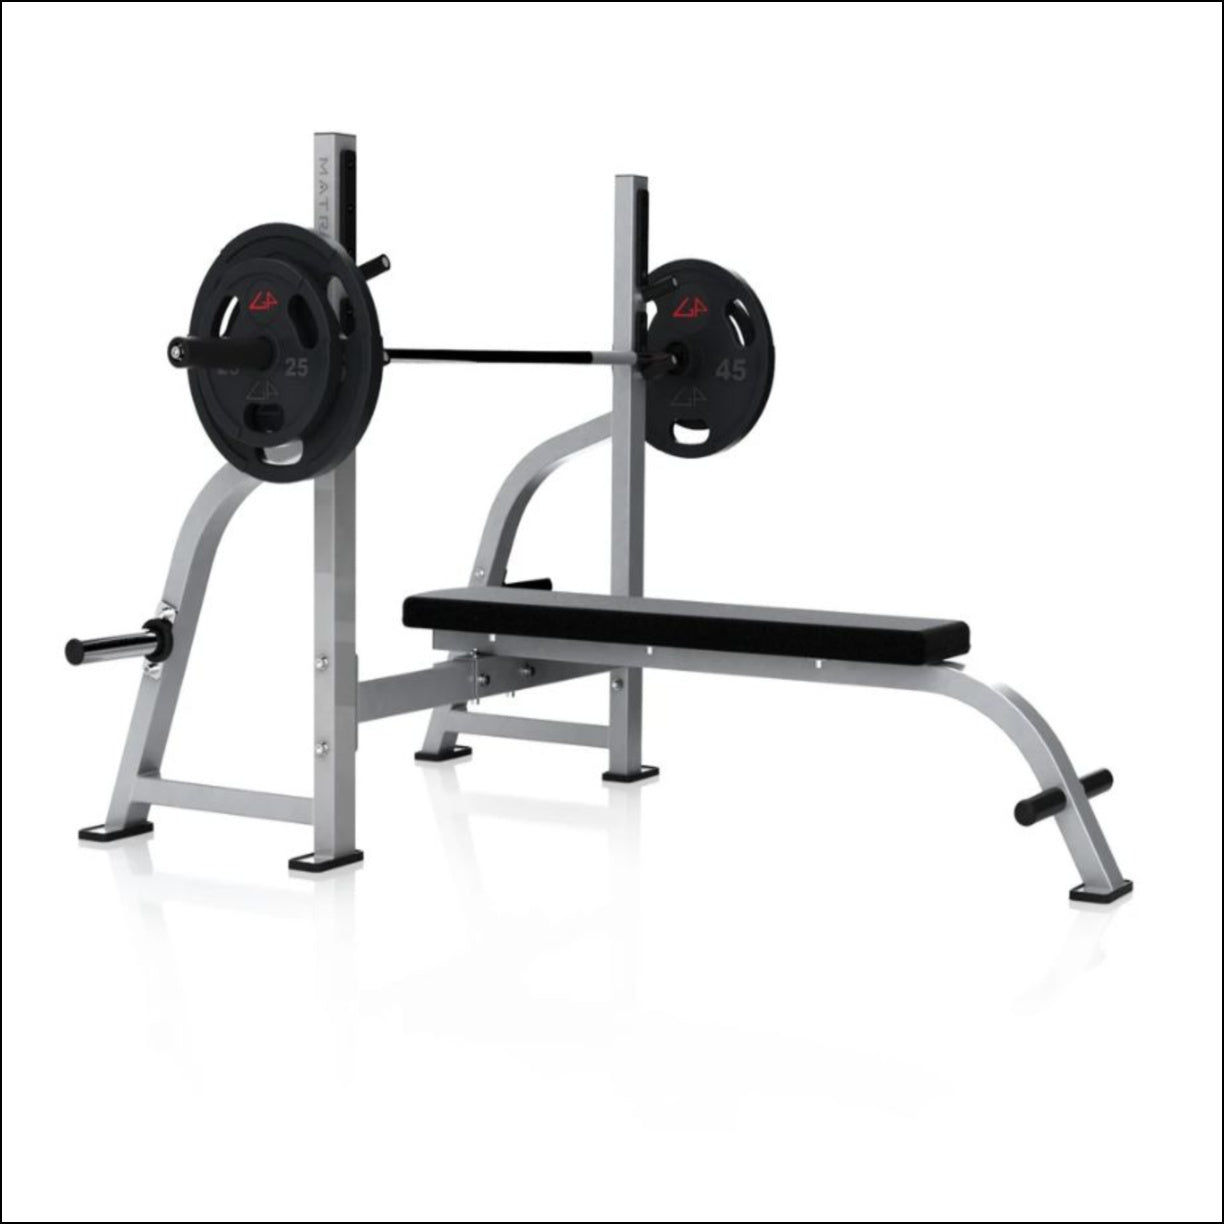 Home gym machines Australia MATRIX G1 OLYMPIC FLAT BENCH Easy spotter access Integrated weight storage horns keep plates in close proximity Footrest provides enhanced user stability